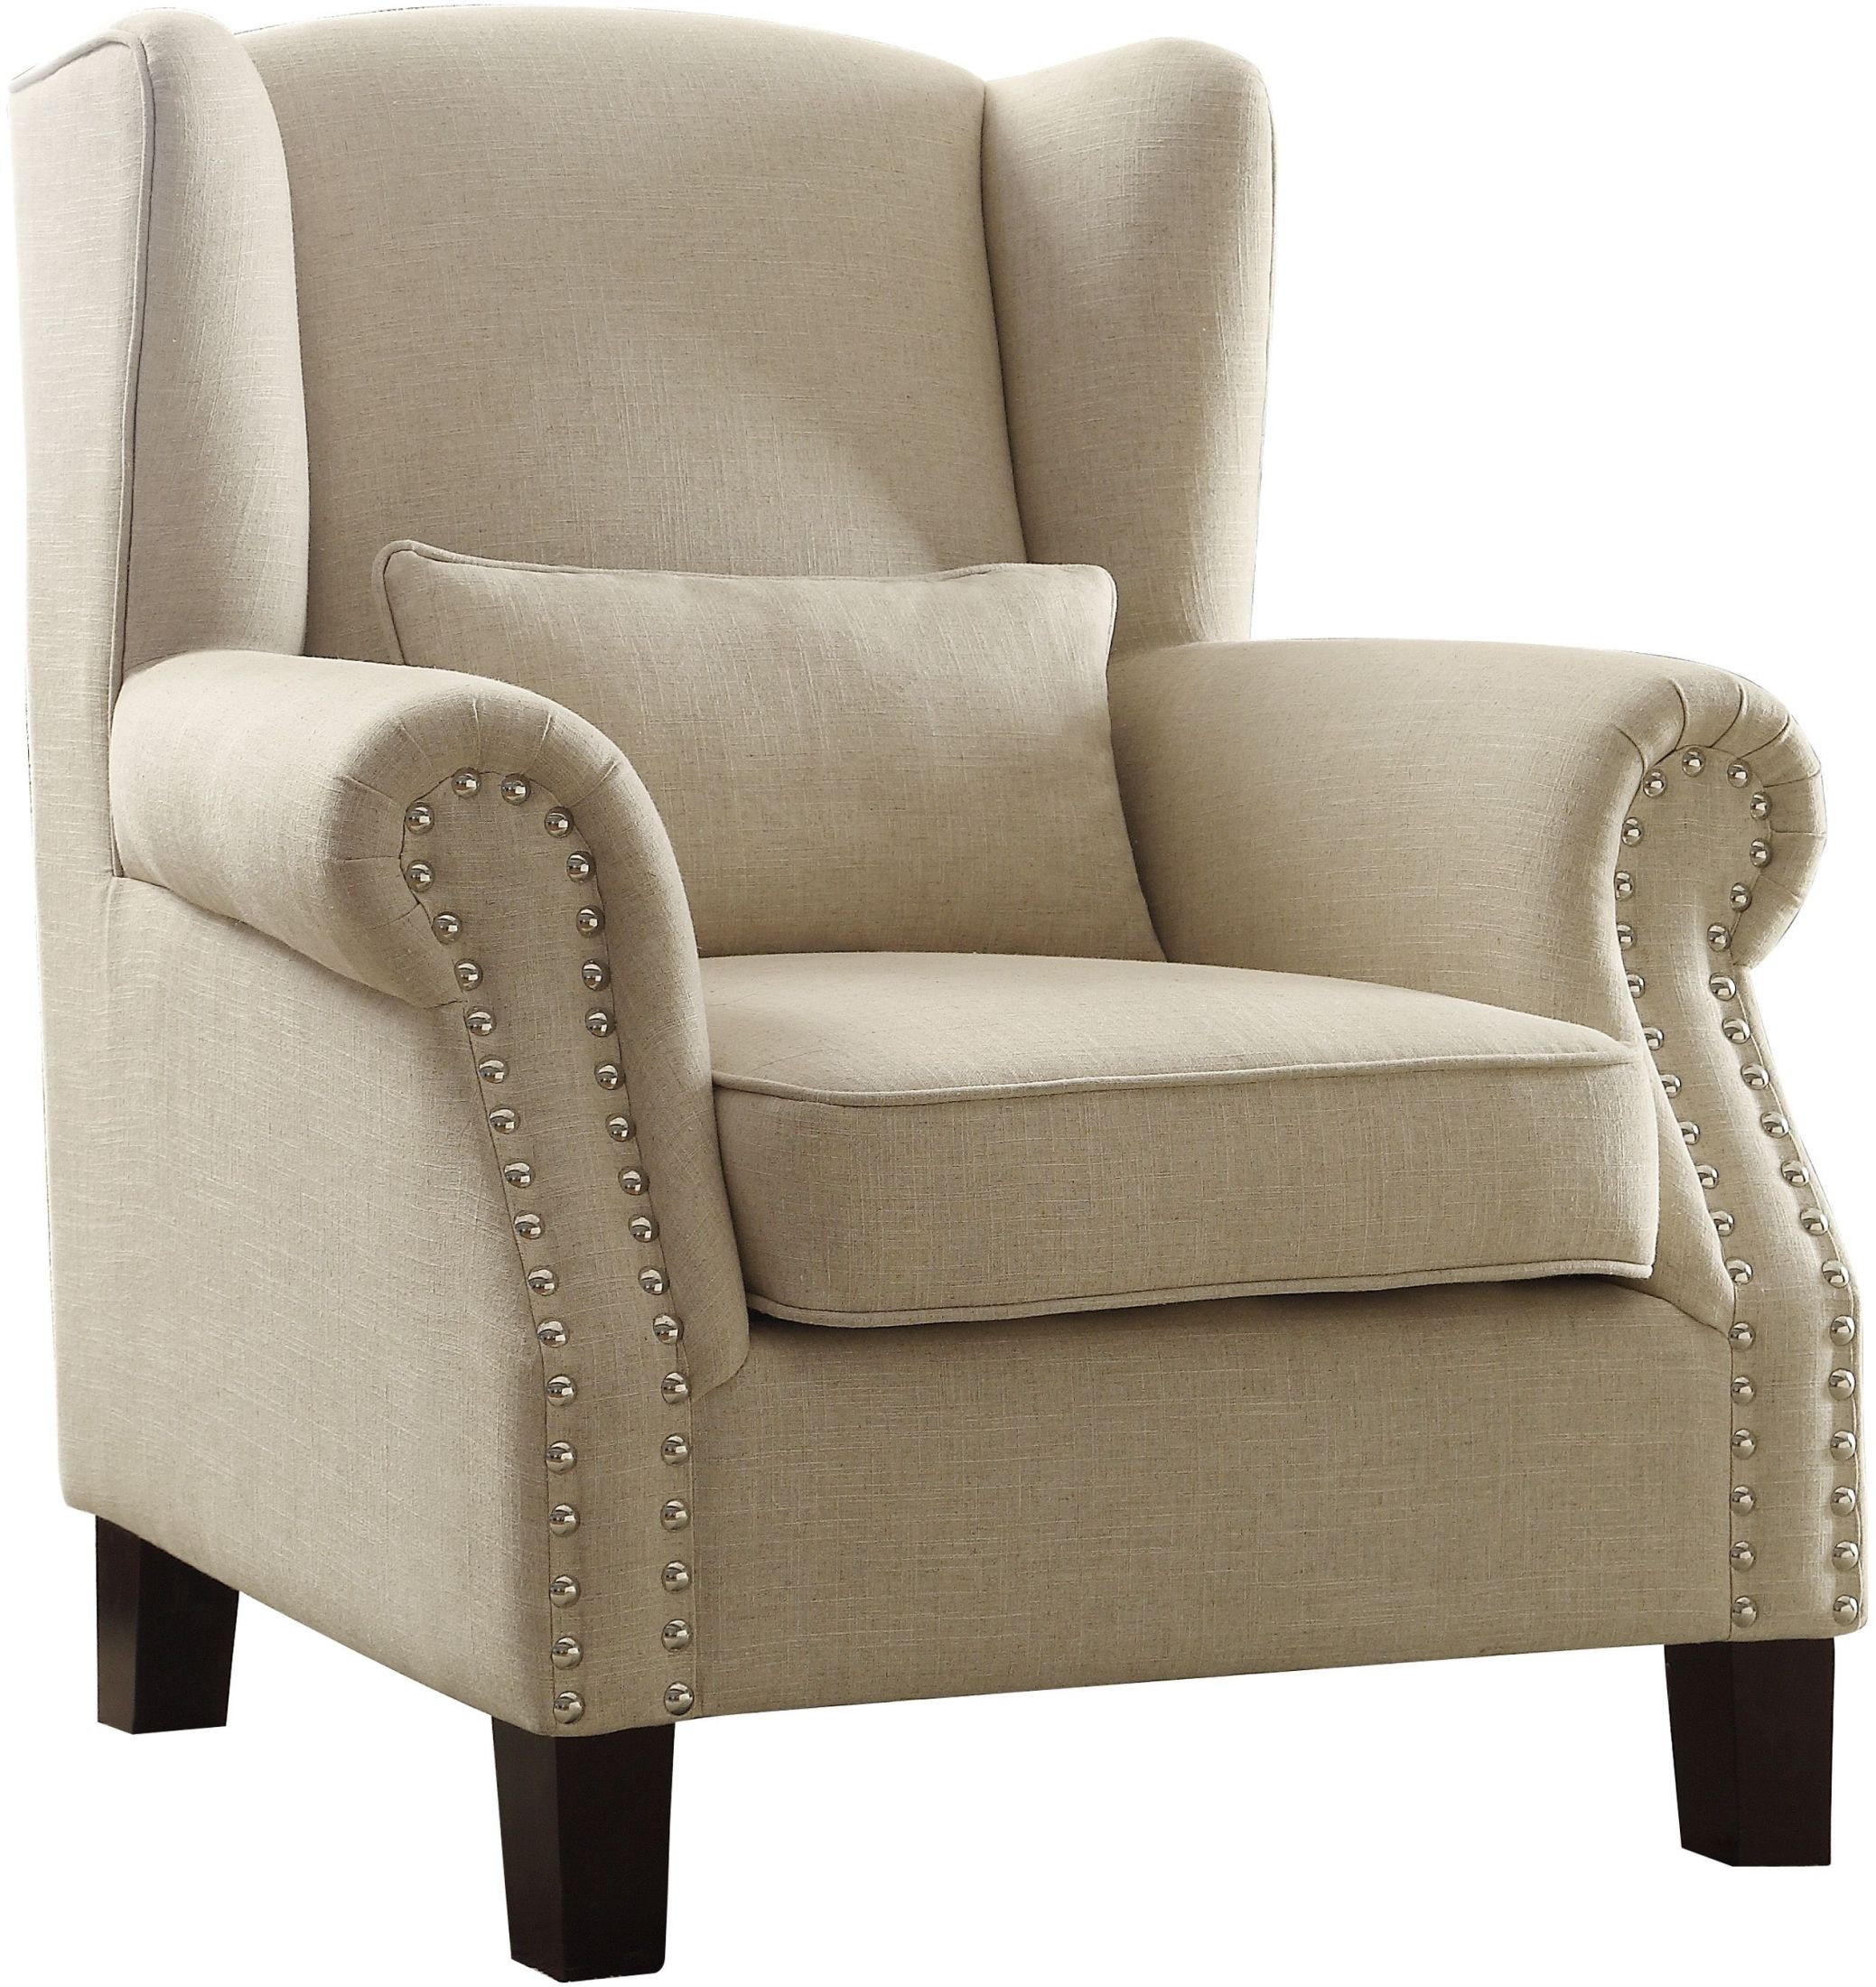 Adelaide Linen Accent Chair from Homelegance